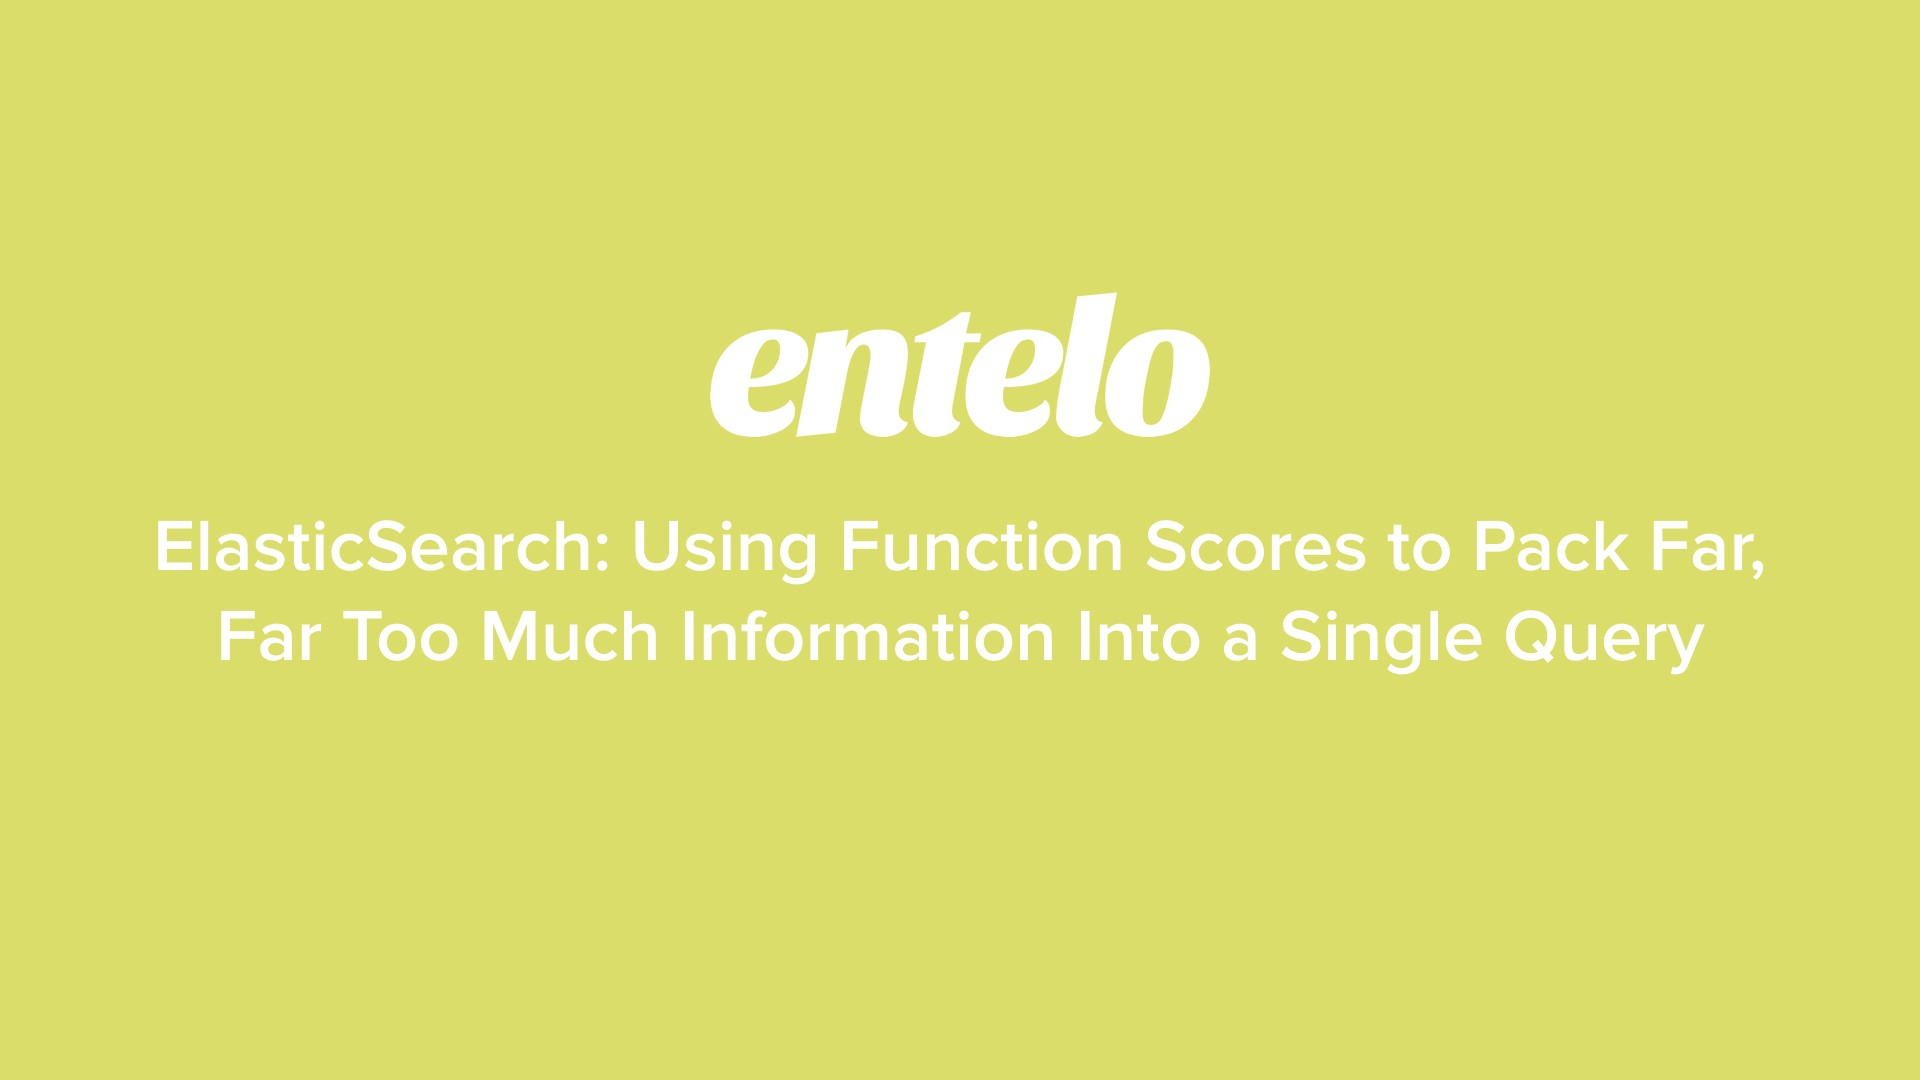 ElasticSearch: Using Function Scores to Pack Far, Far Too